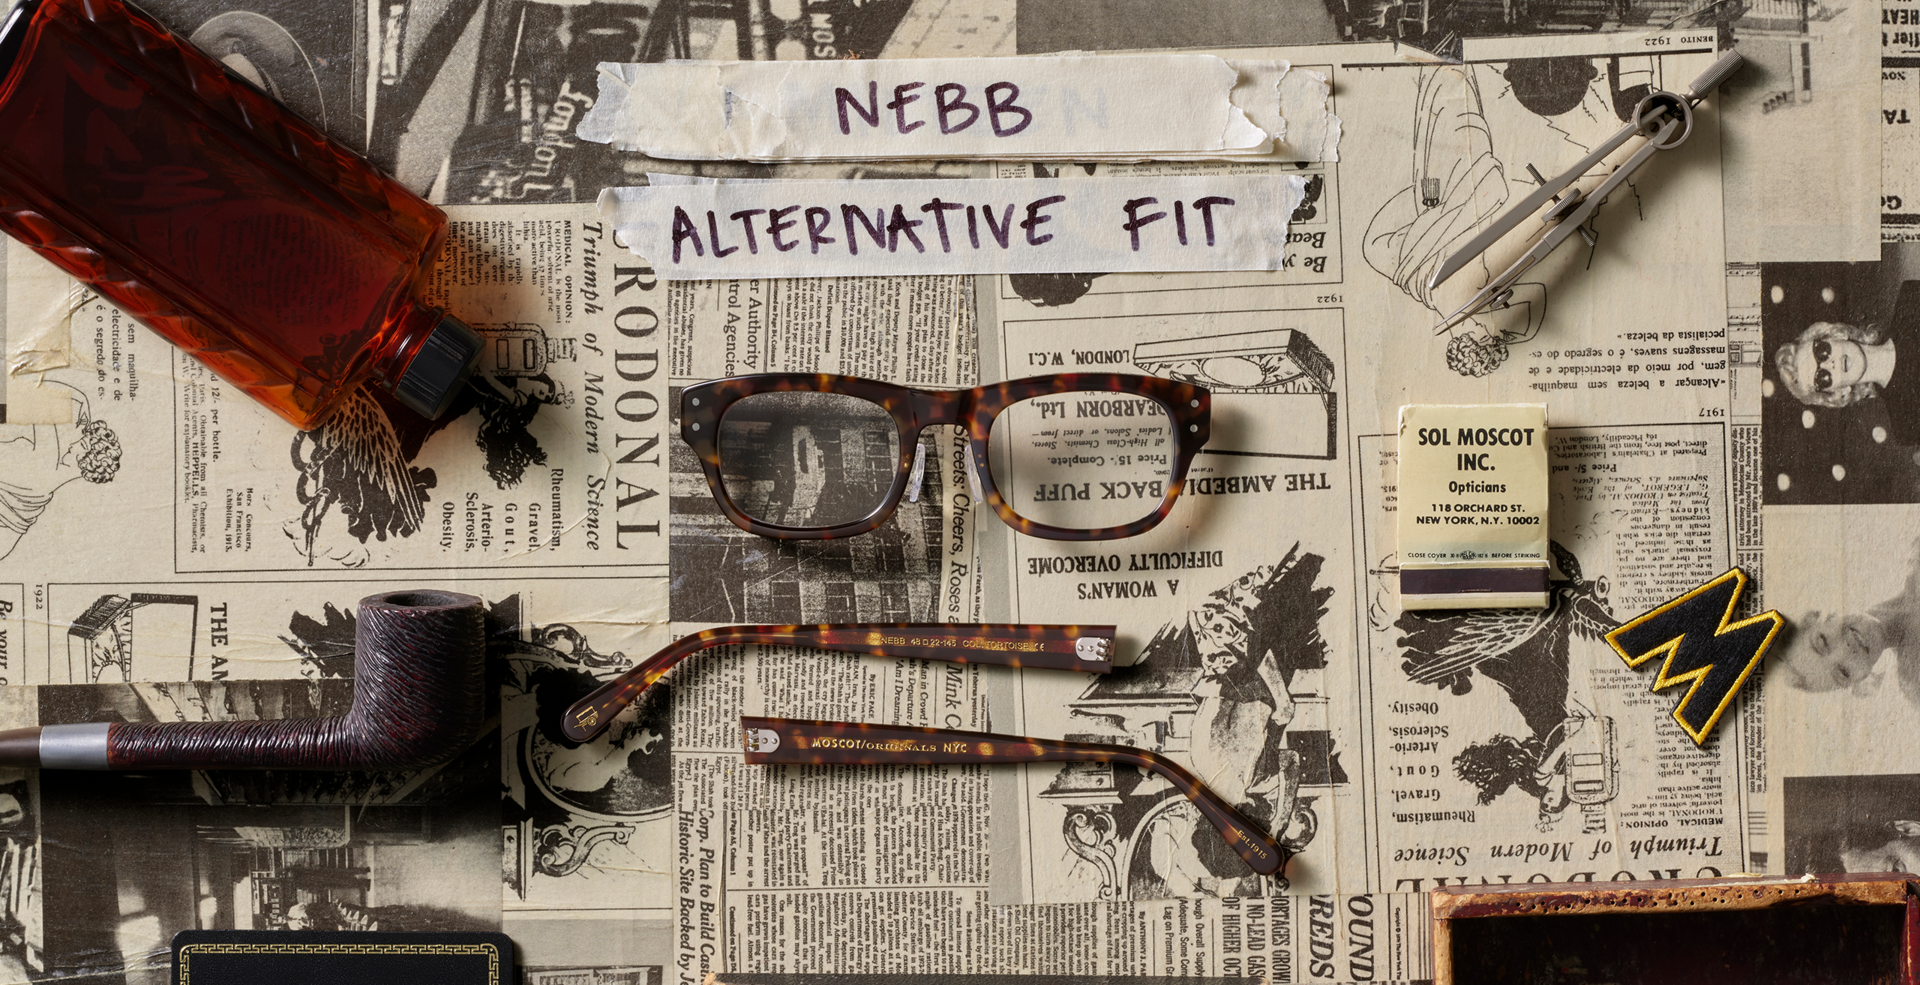 NEBB Alternative Fit